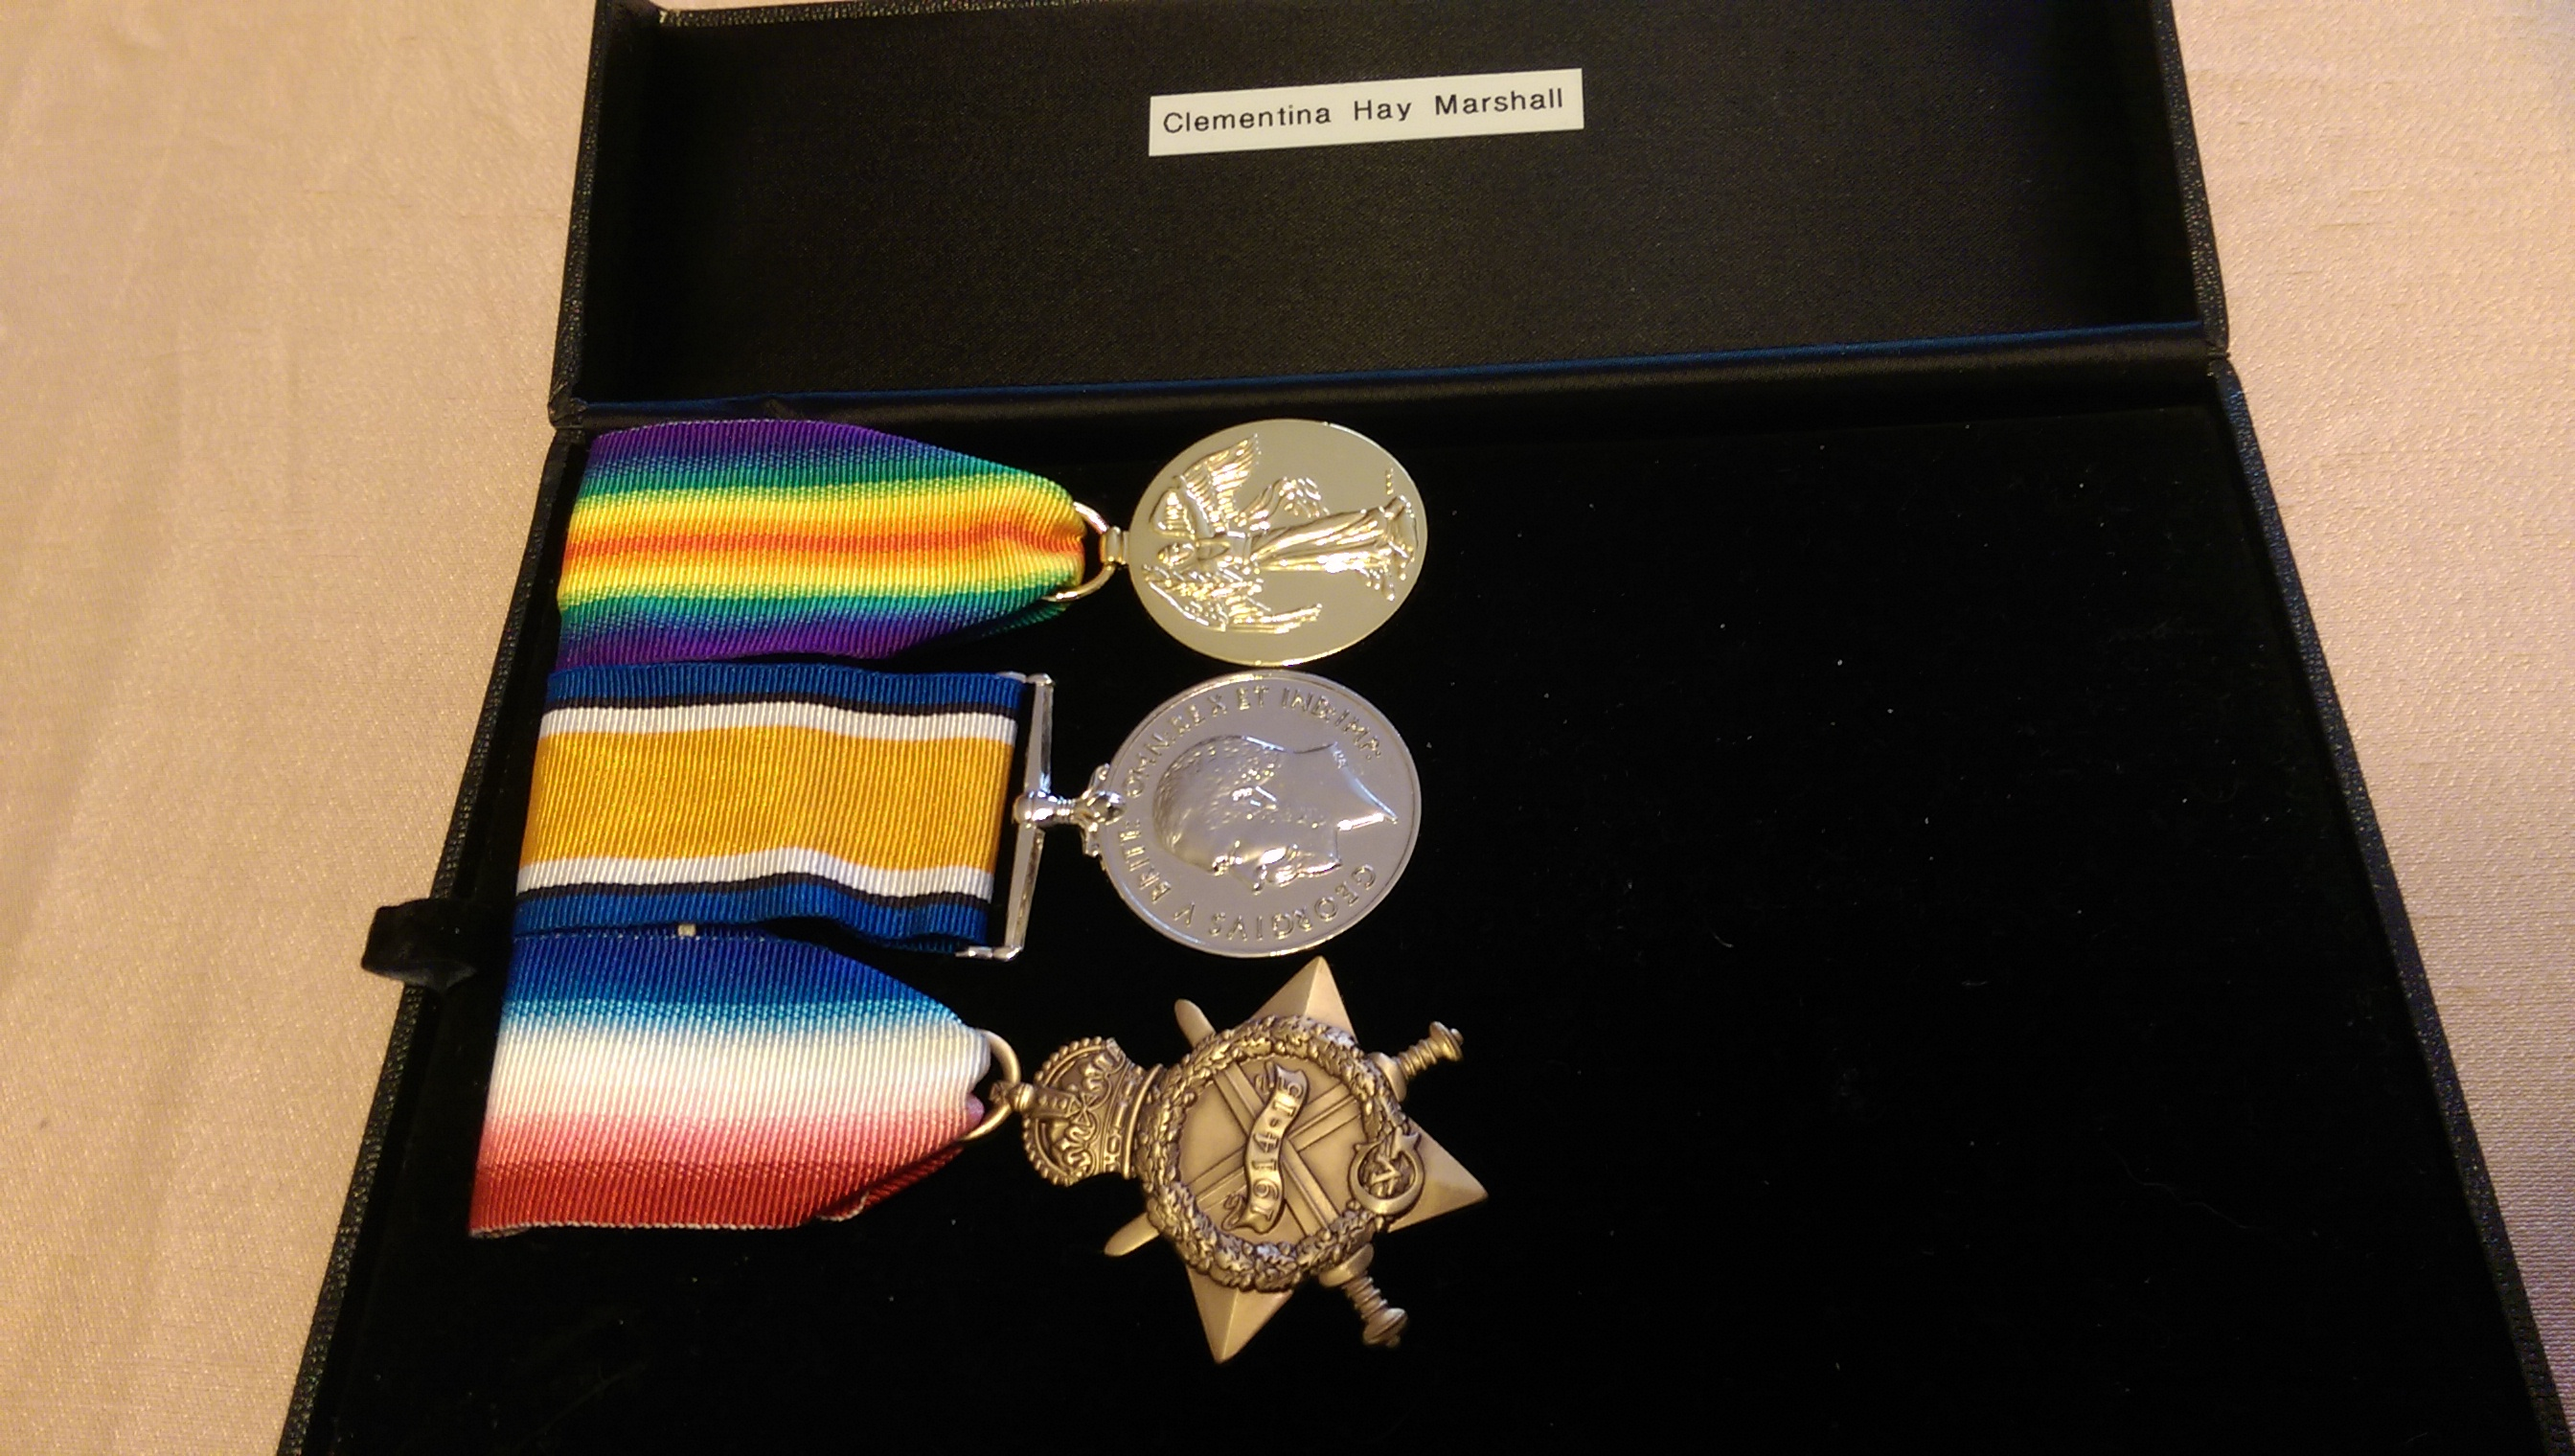 REPRODUCTIONS OF CLEMENTINA MARSHALL WW1 SERVICE MEDALS, C/O MARGARET MARSHALL GREAT NIECE.